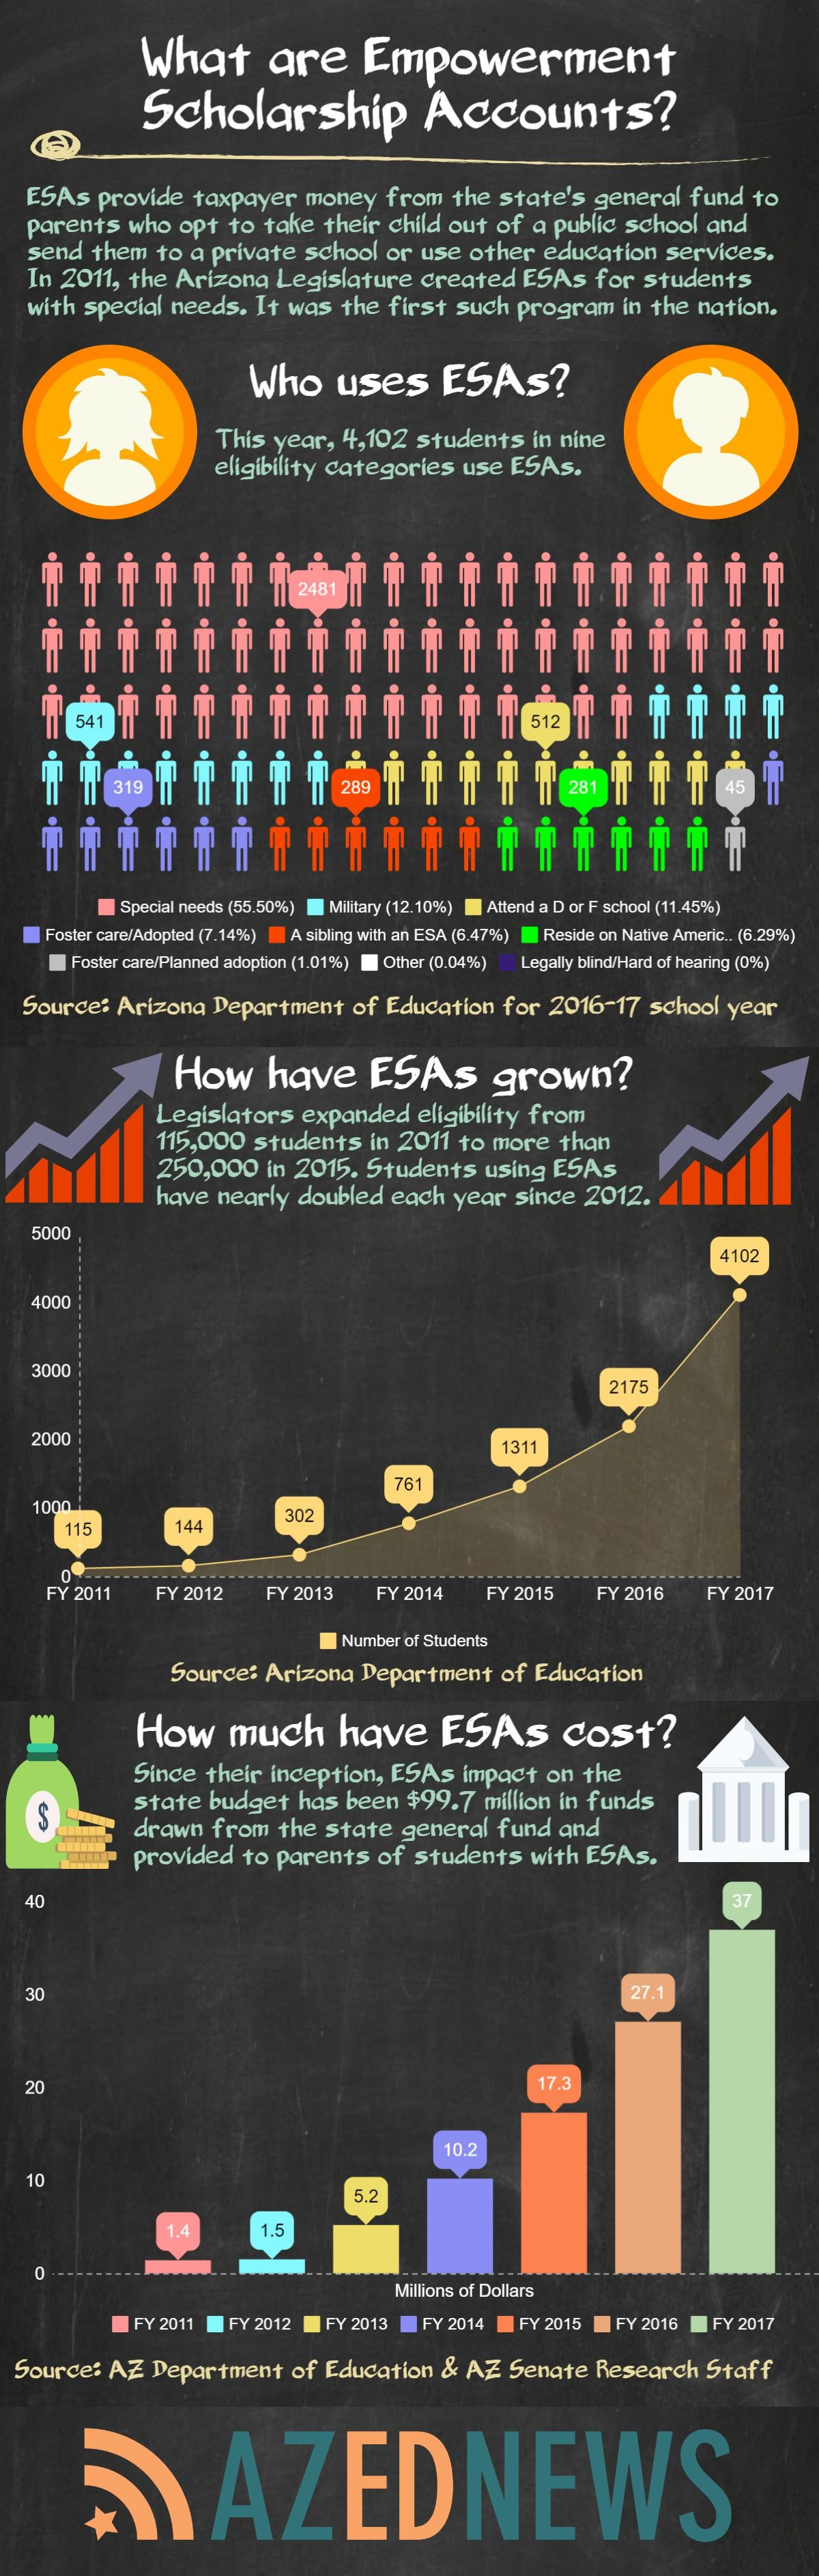 What are Arizona's Empowerment Scholarship Accounts? AZEdNewsWhatAreESAsInfographicUpdated